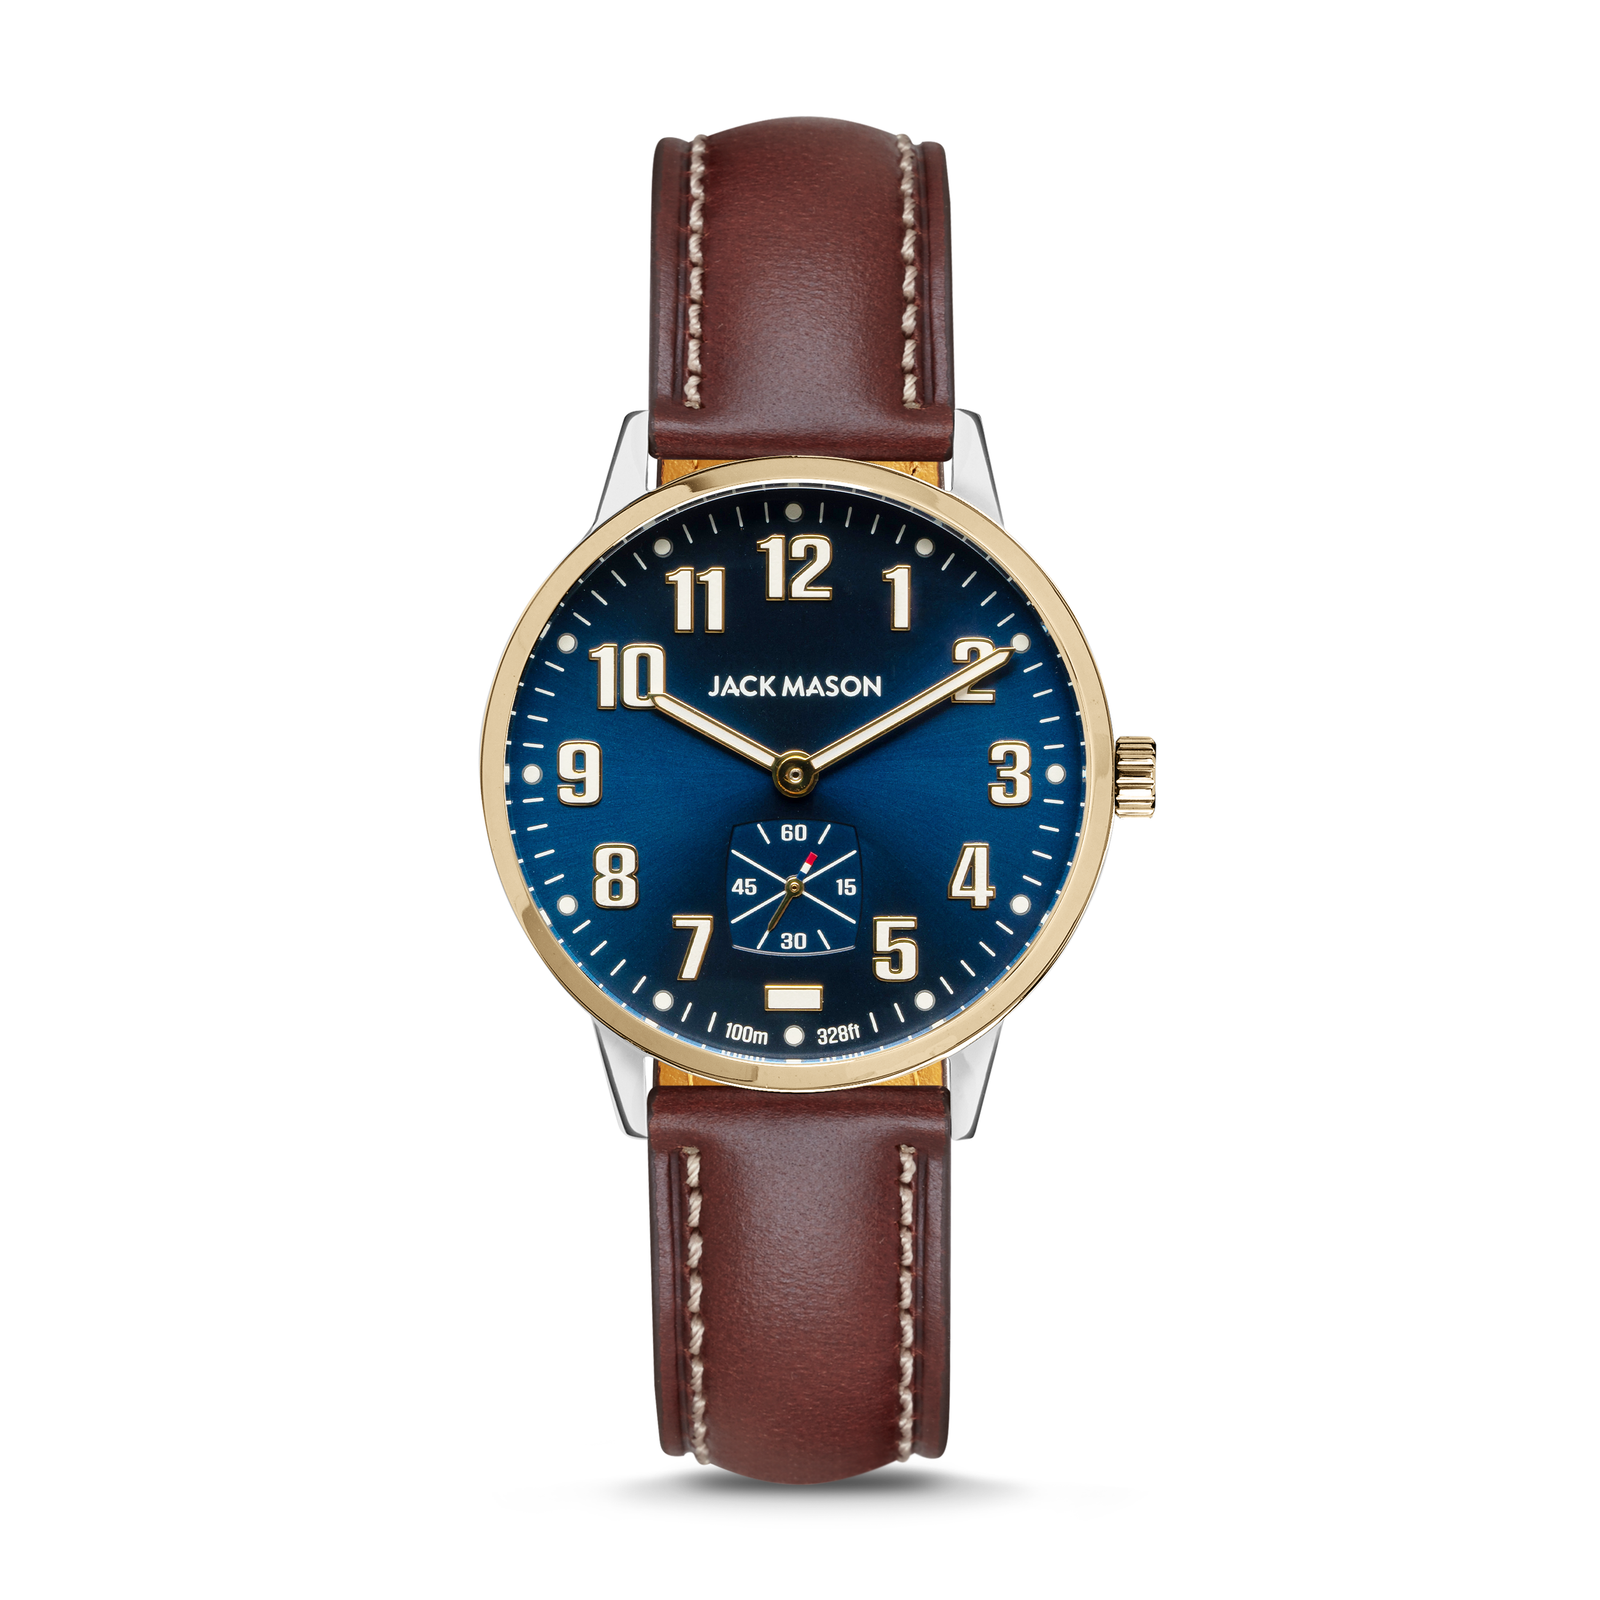 38mm Field Watch in Navy Blue and Yellow Gold